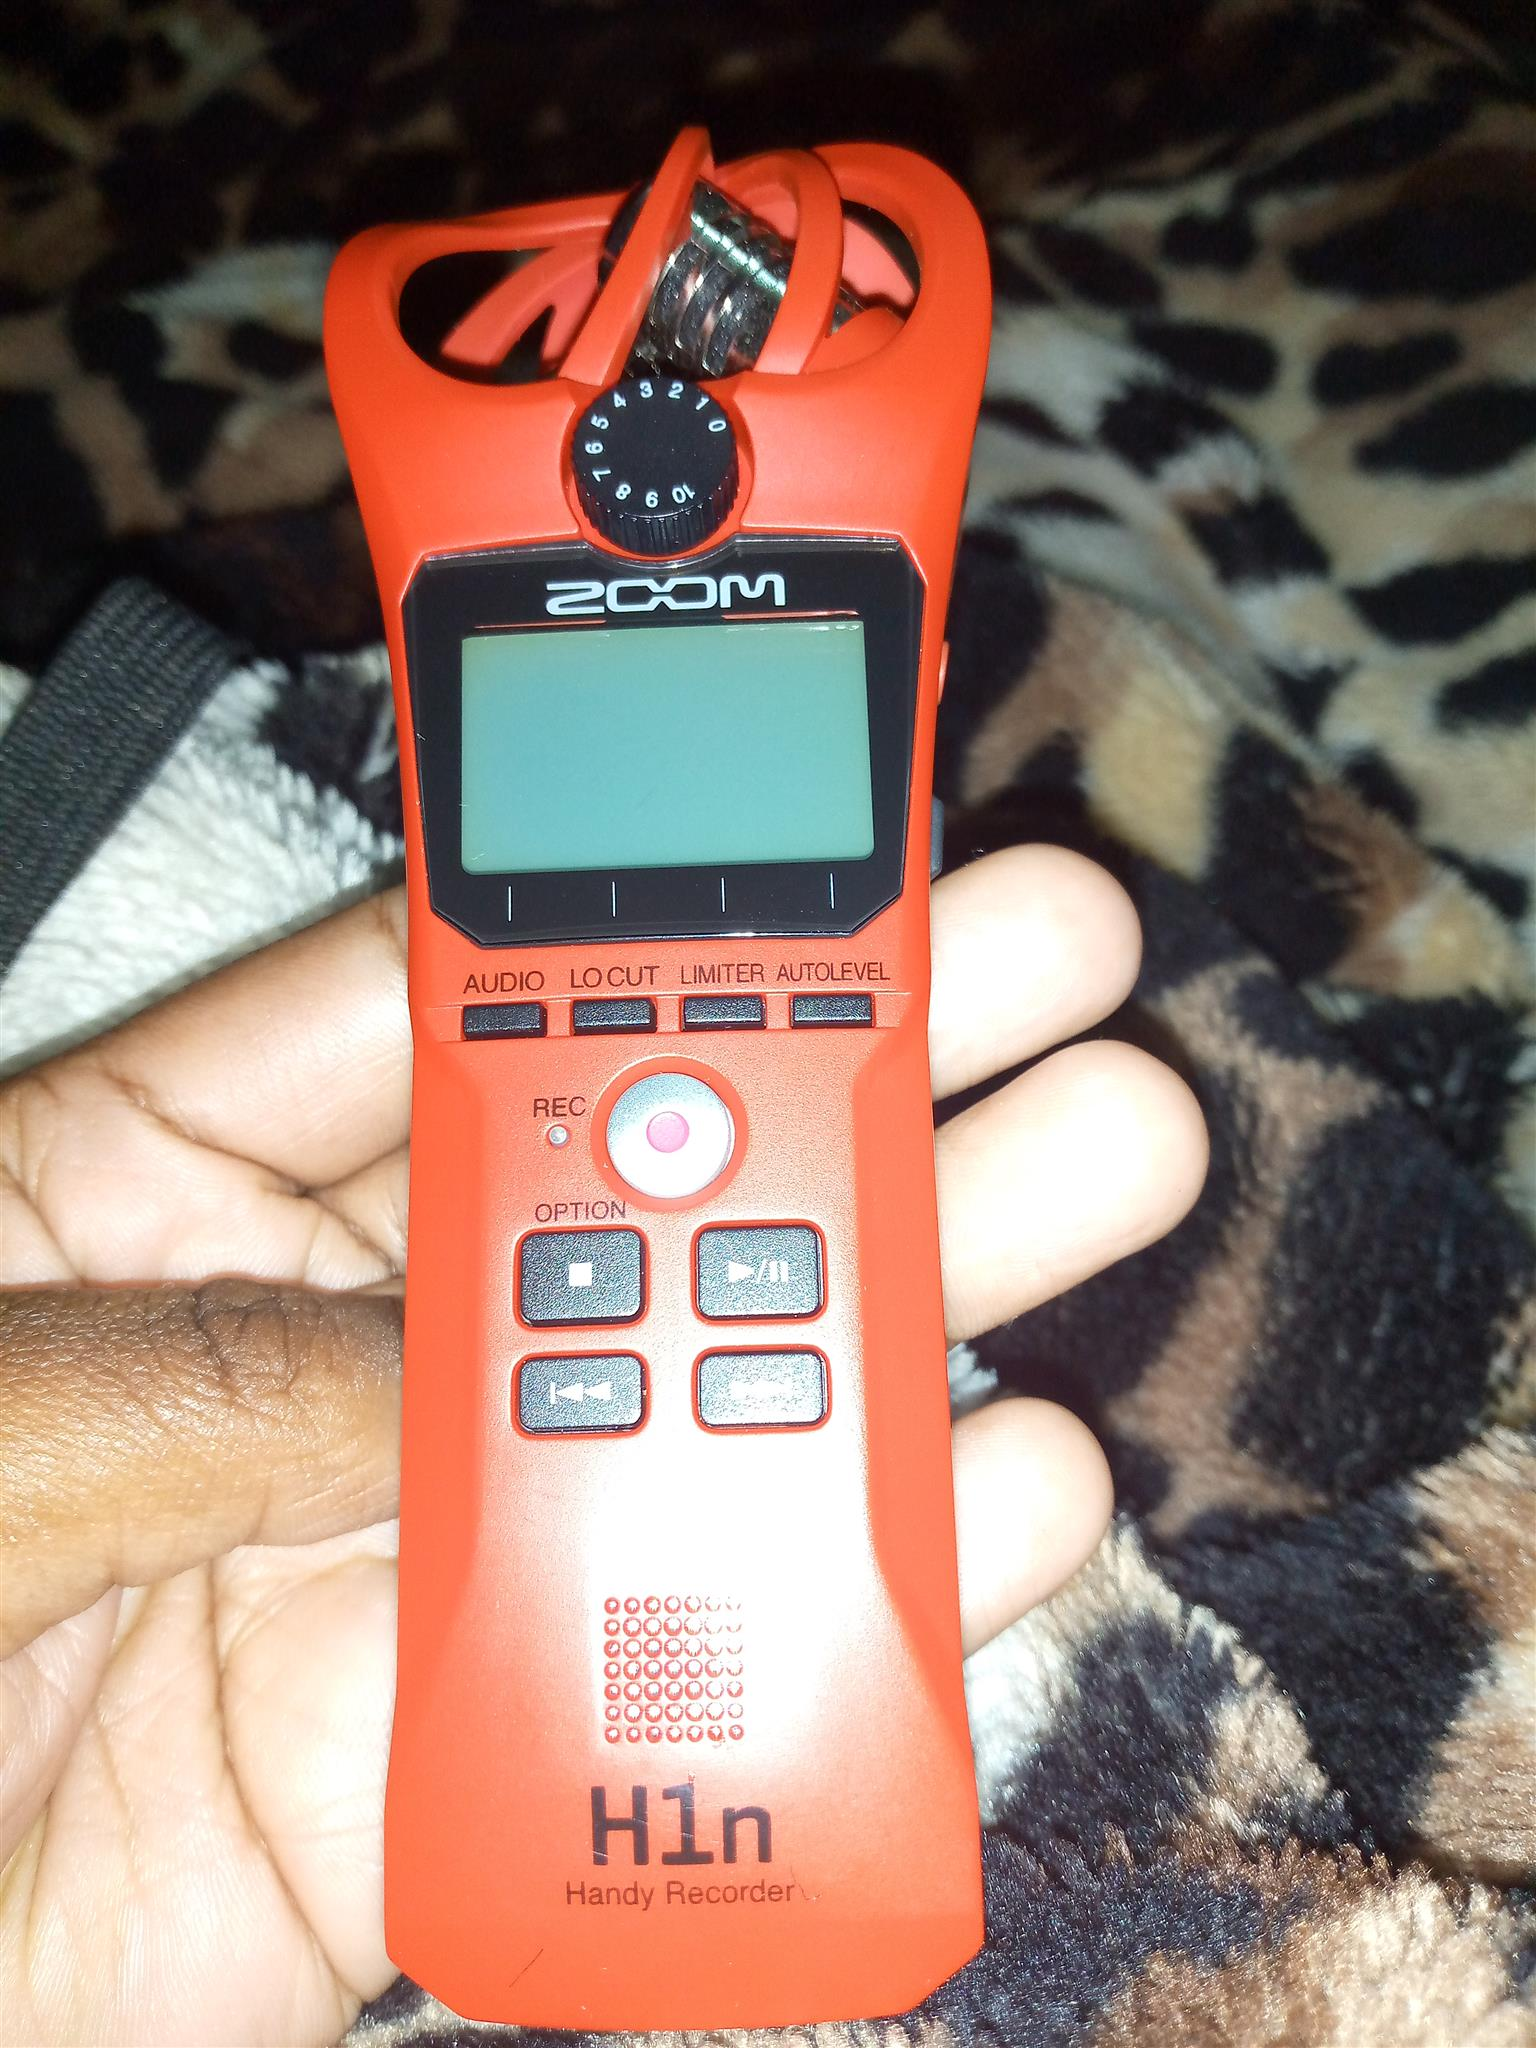 Zoom H1n latest version in excellent condition. Comes with accessories.